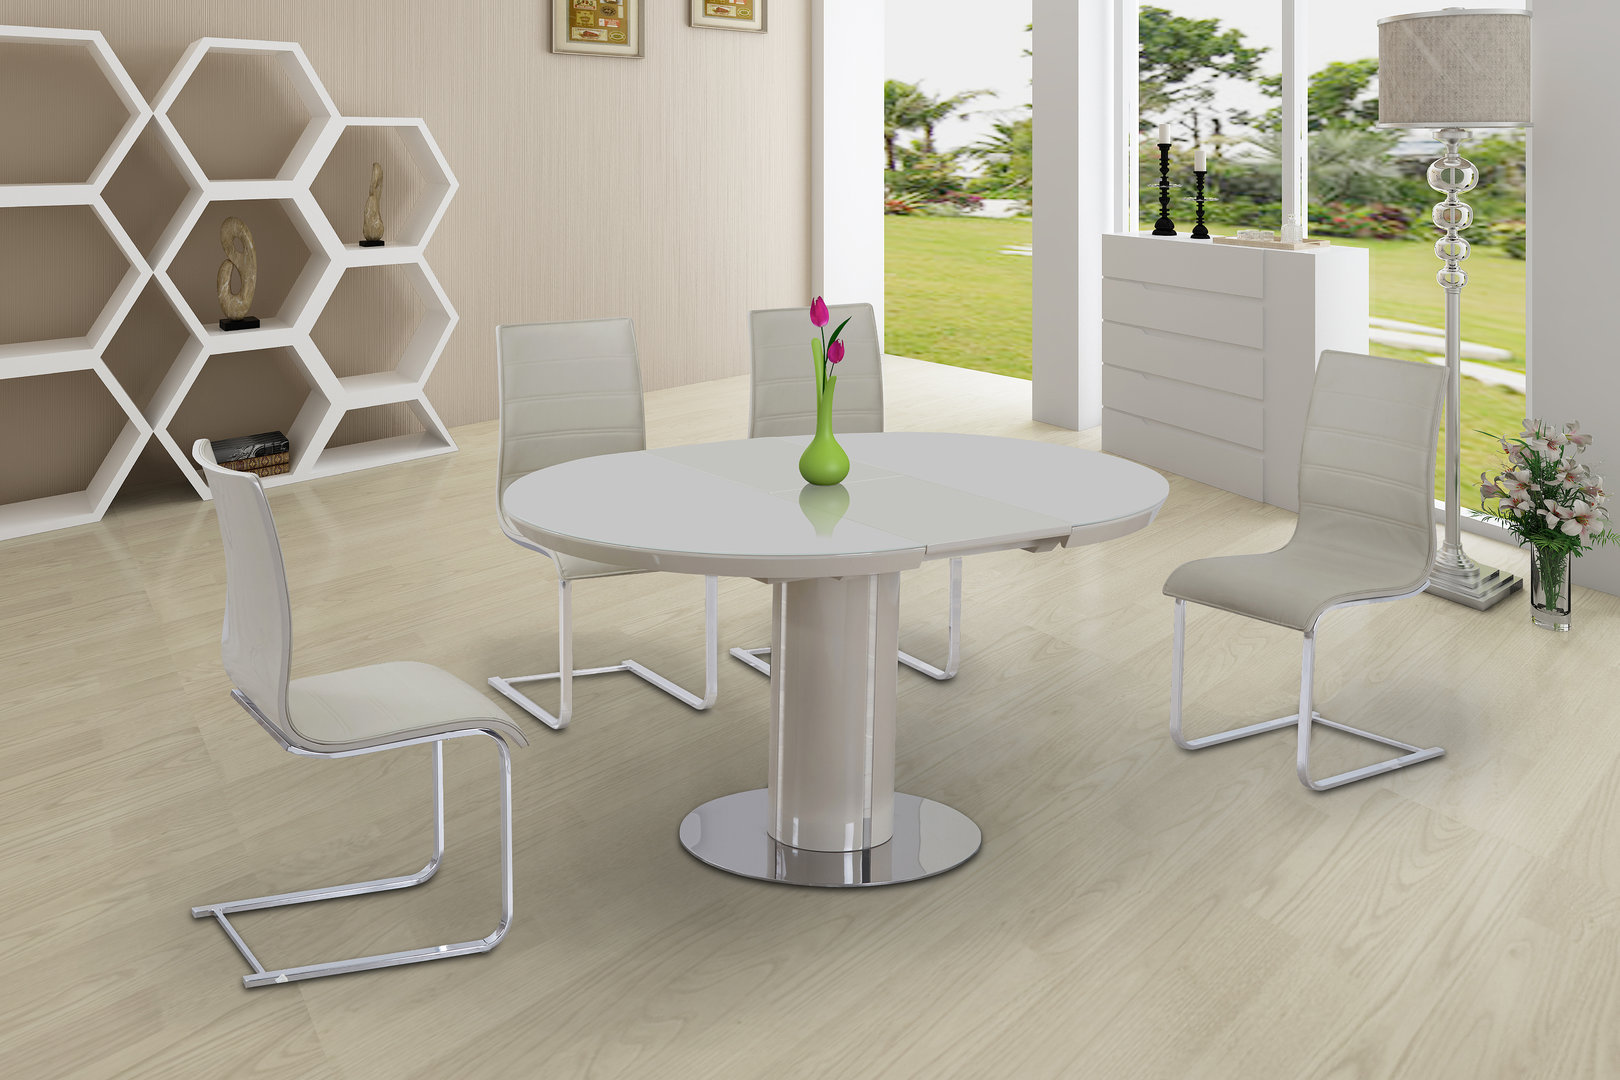 Round Cream Glass High Gloss Dining Table Amp 6 Chairs